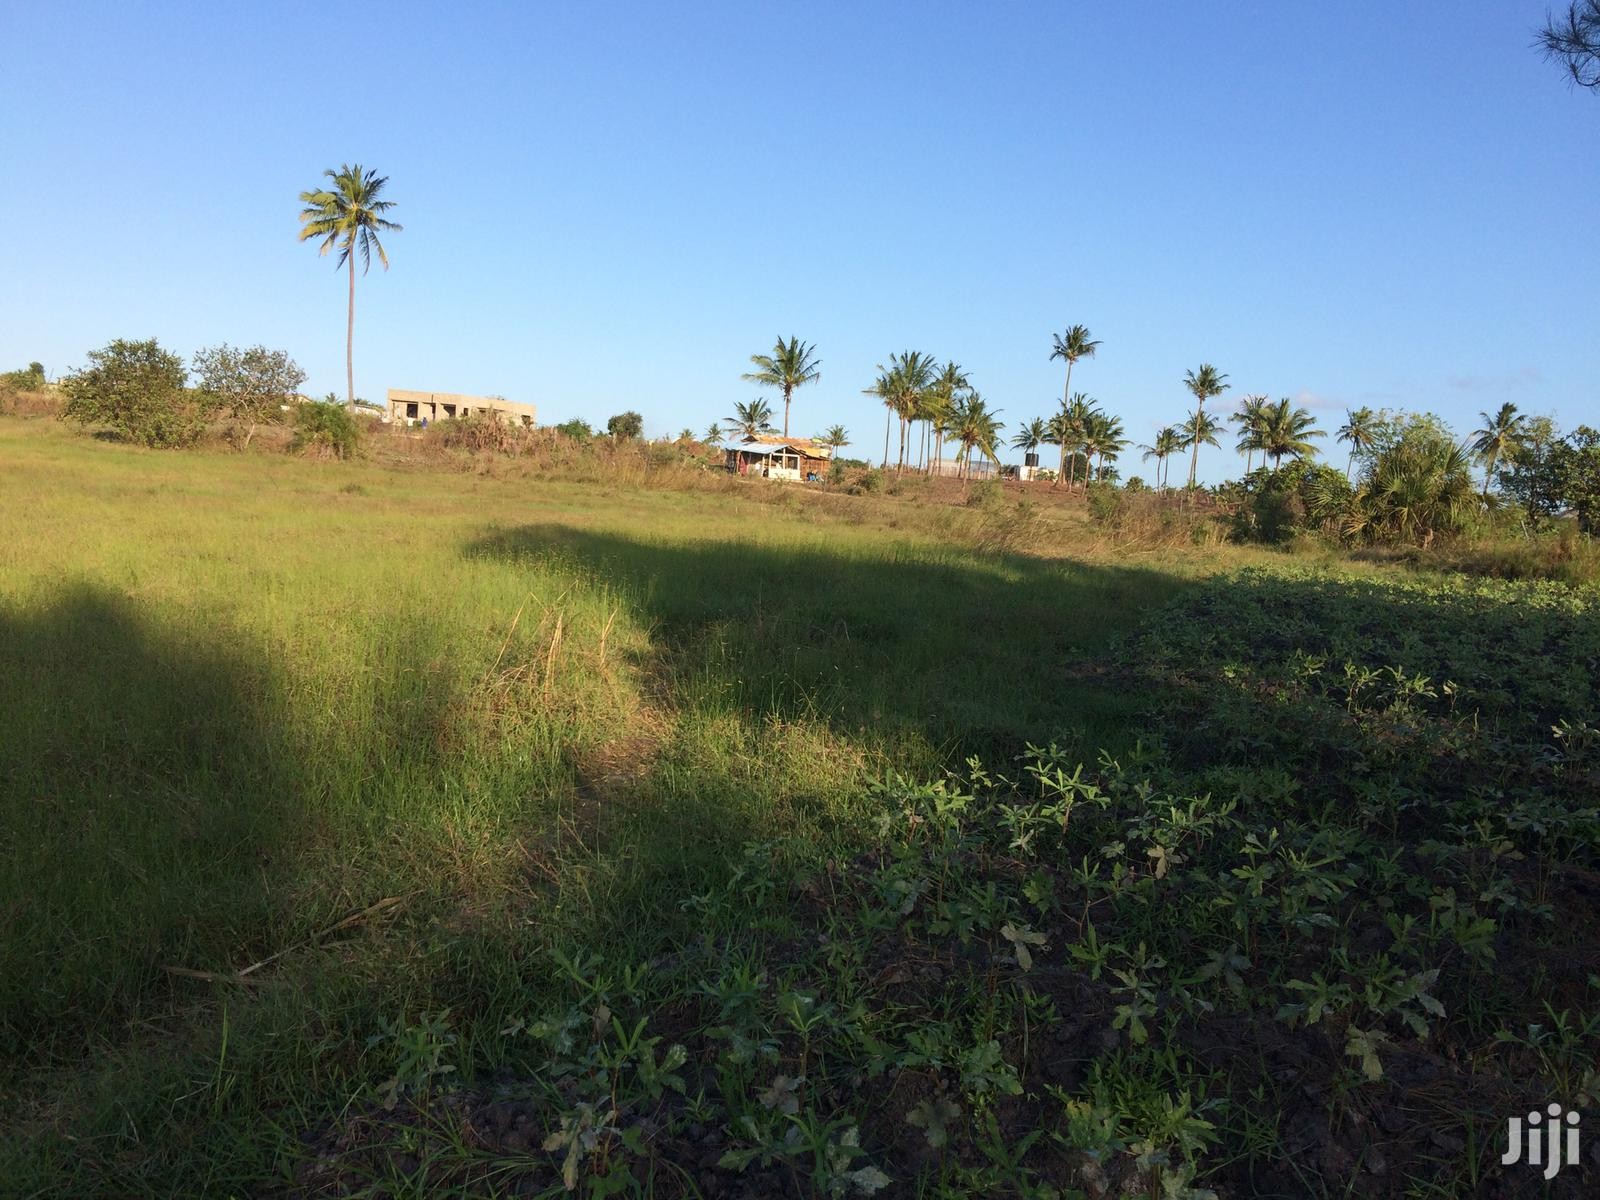 1.8 Acres Of Land For Sale At Kigamboni Bamba. | Land & Plots For Sale for sale in Temeke, Dar es Salaam, Tanzania